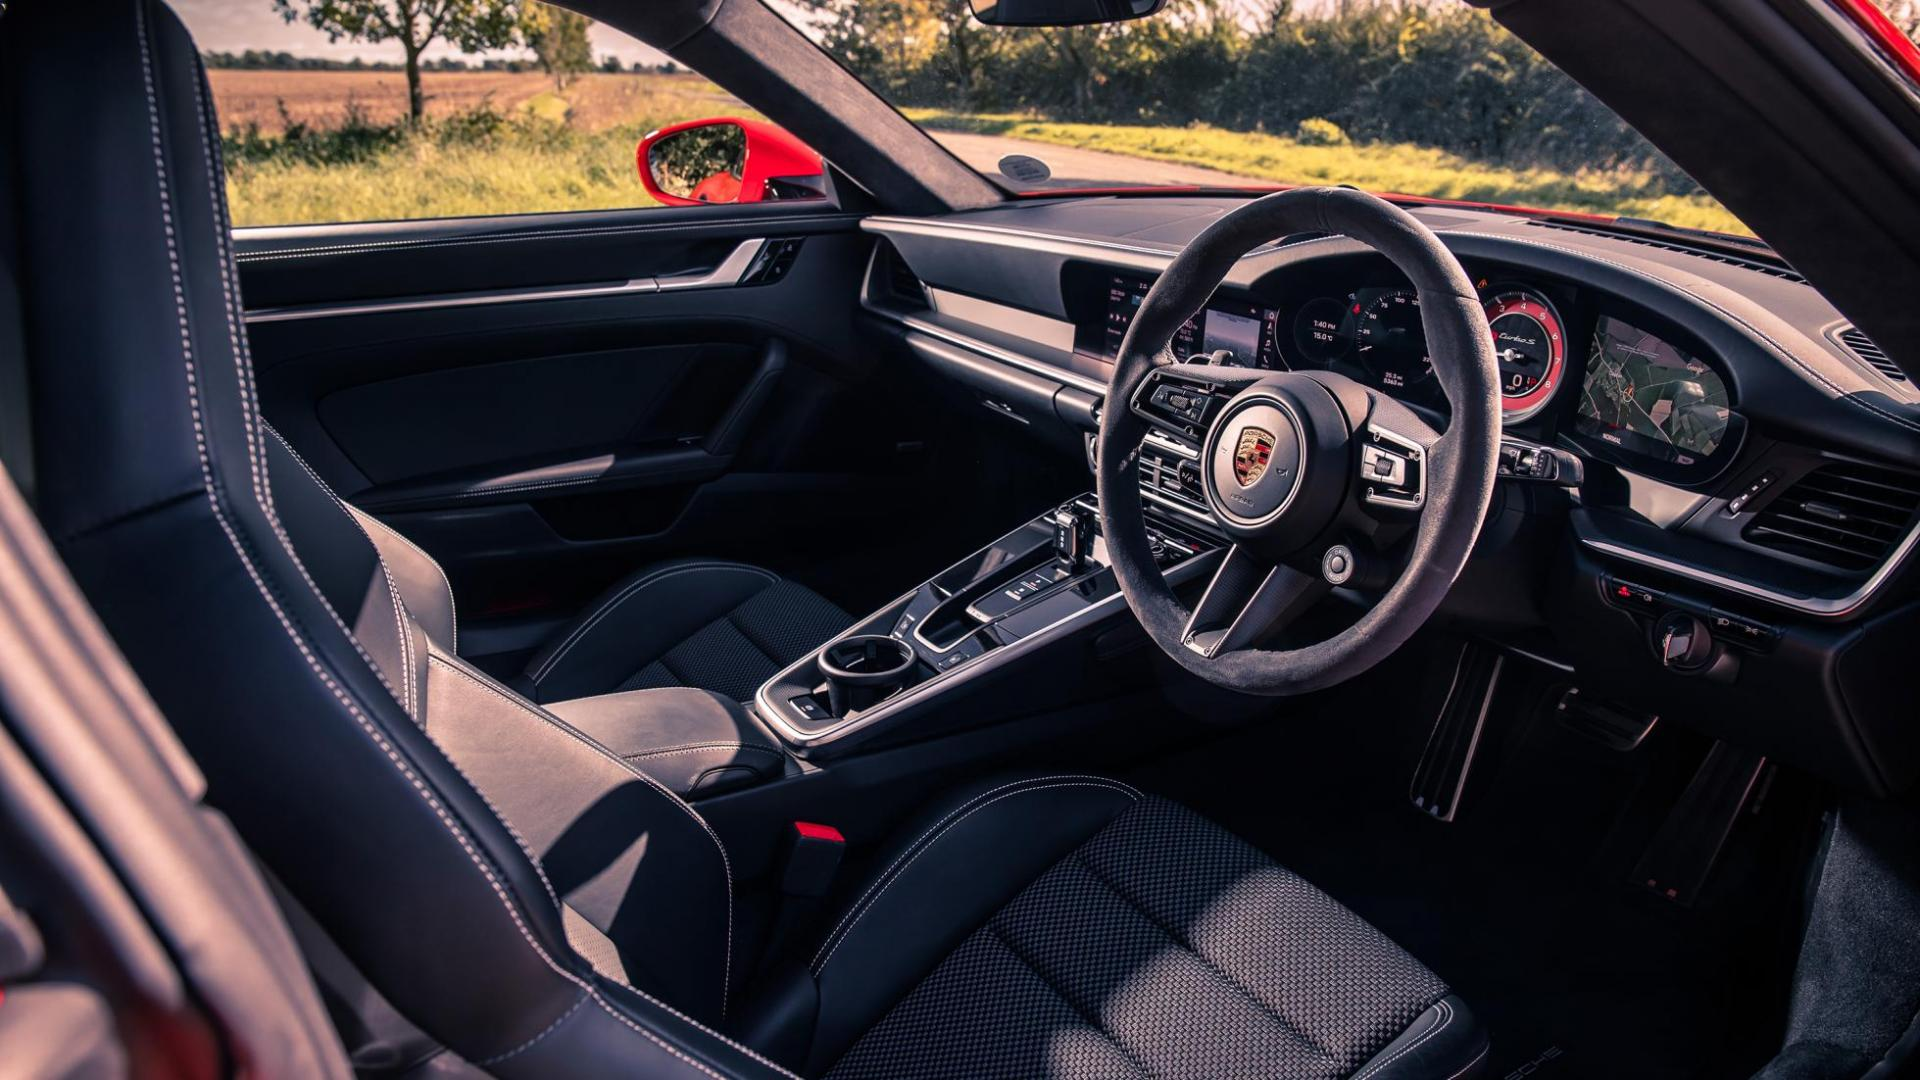 Interieur Porsche 911 Turbo S (992) (2020) (Rood)